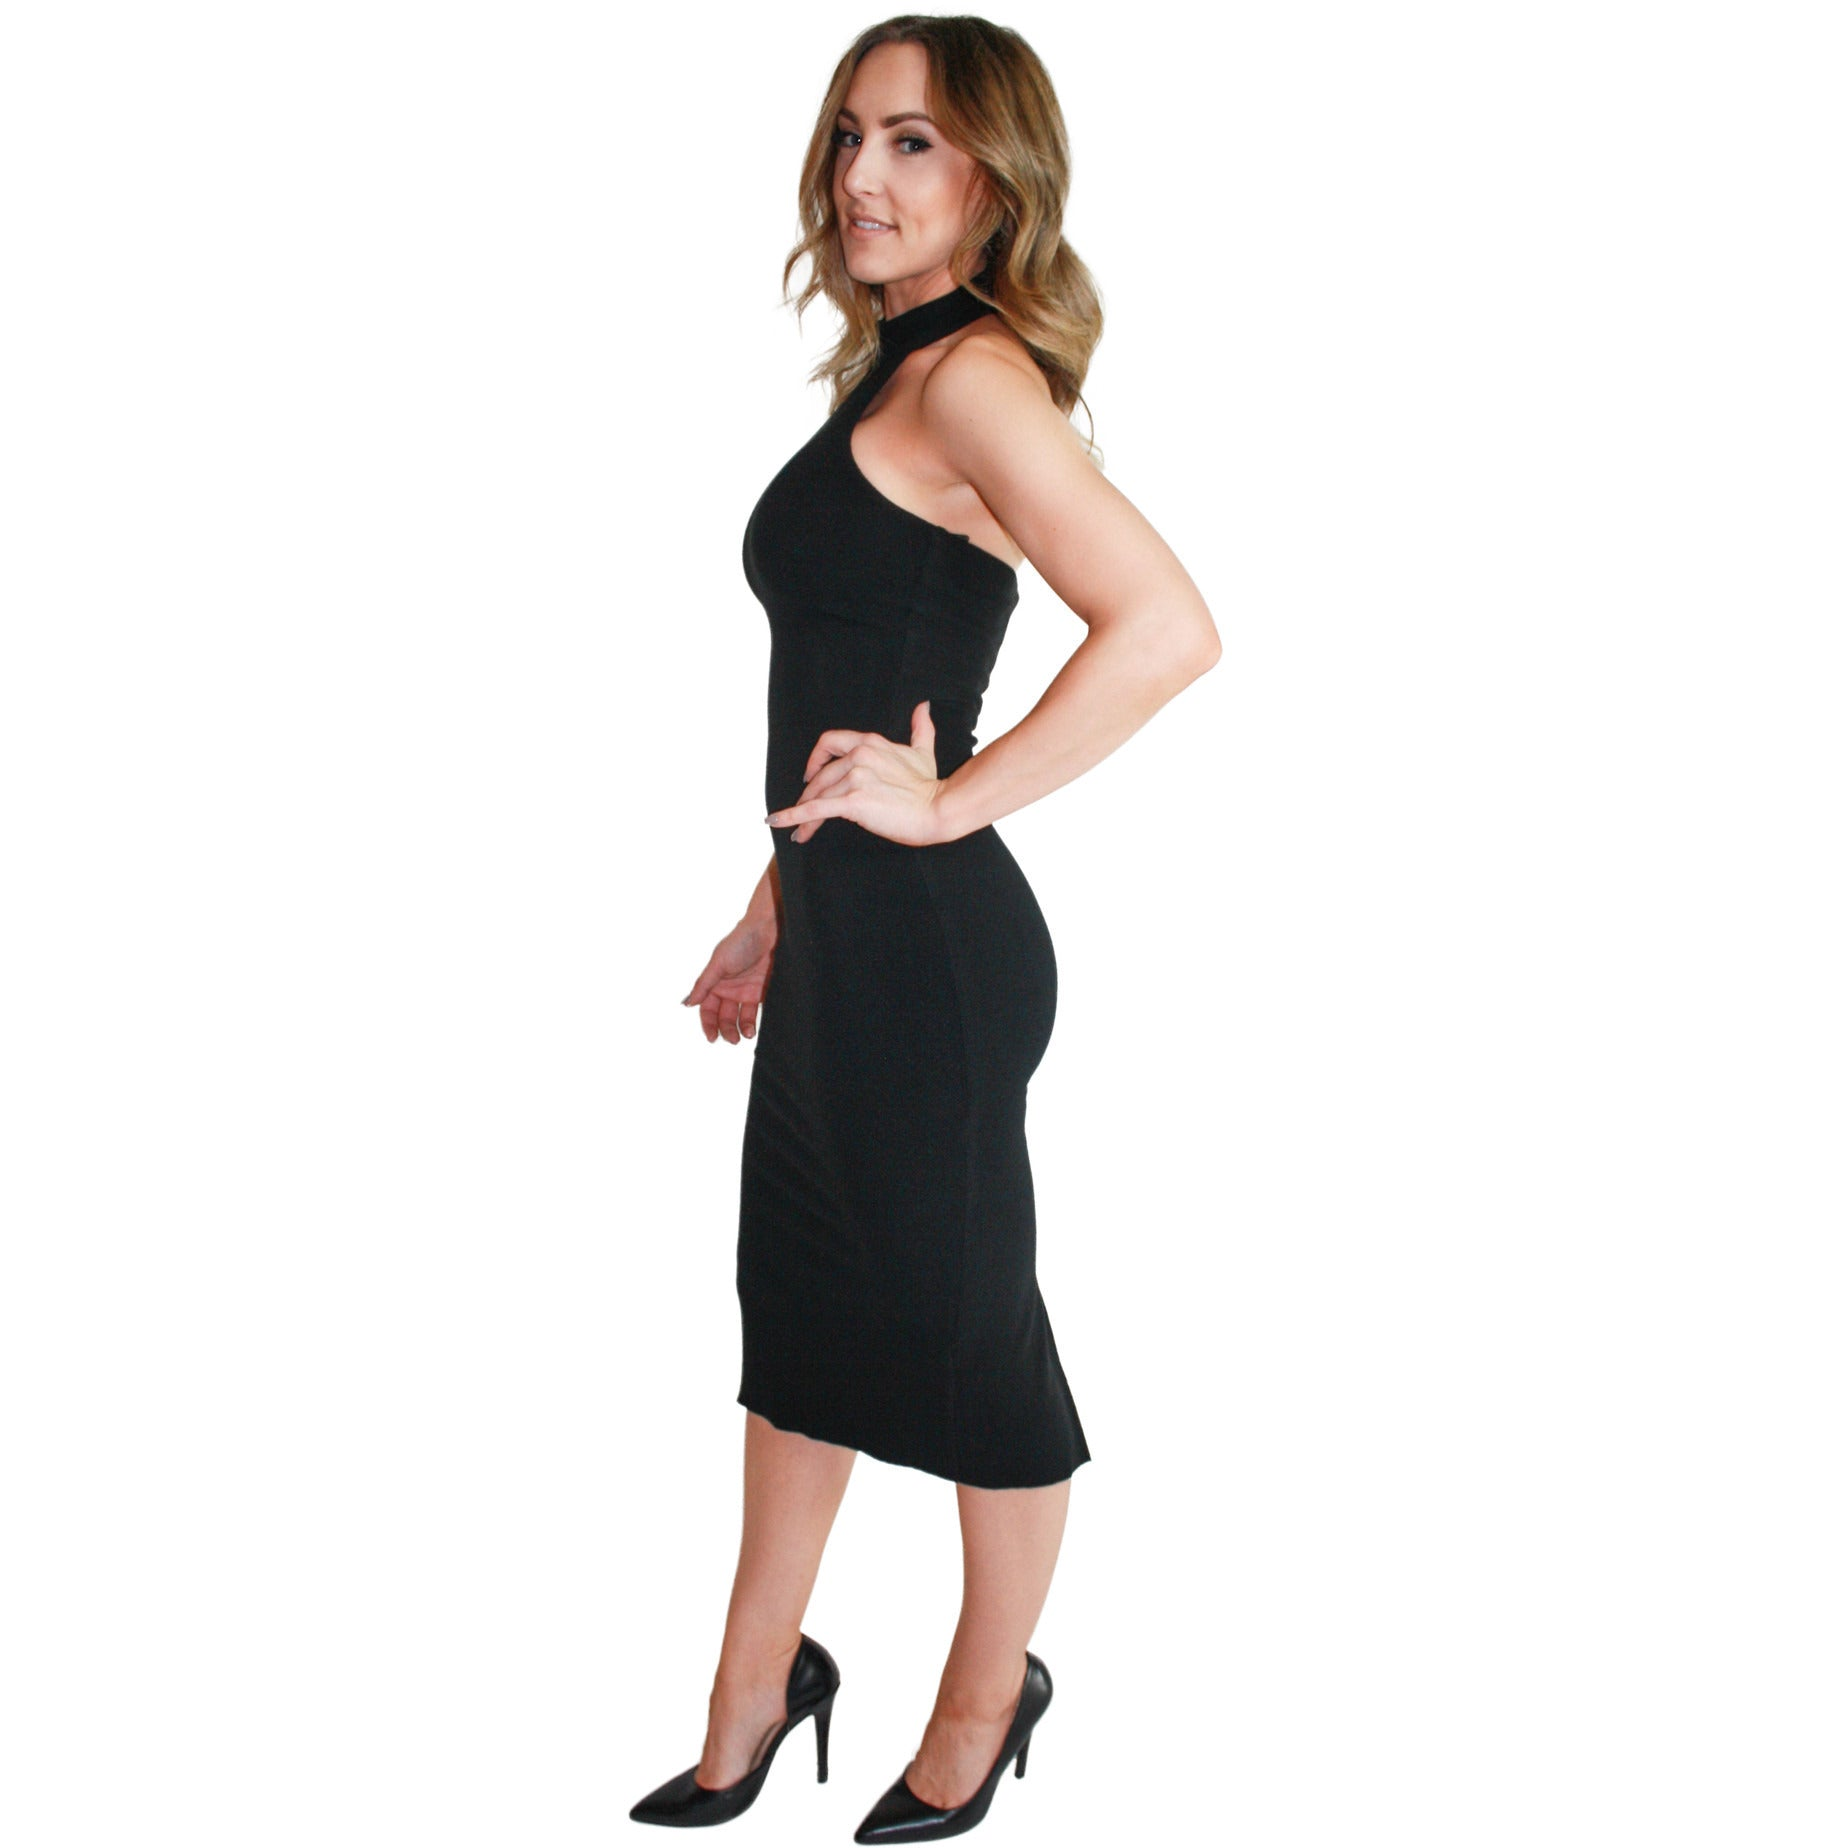 Jamie Turtleneck Halter Dress in Black